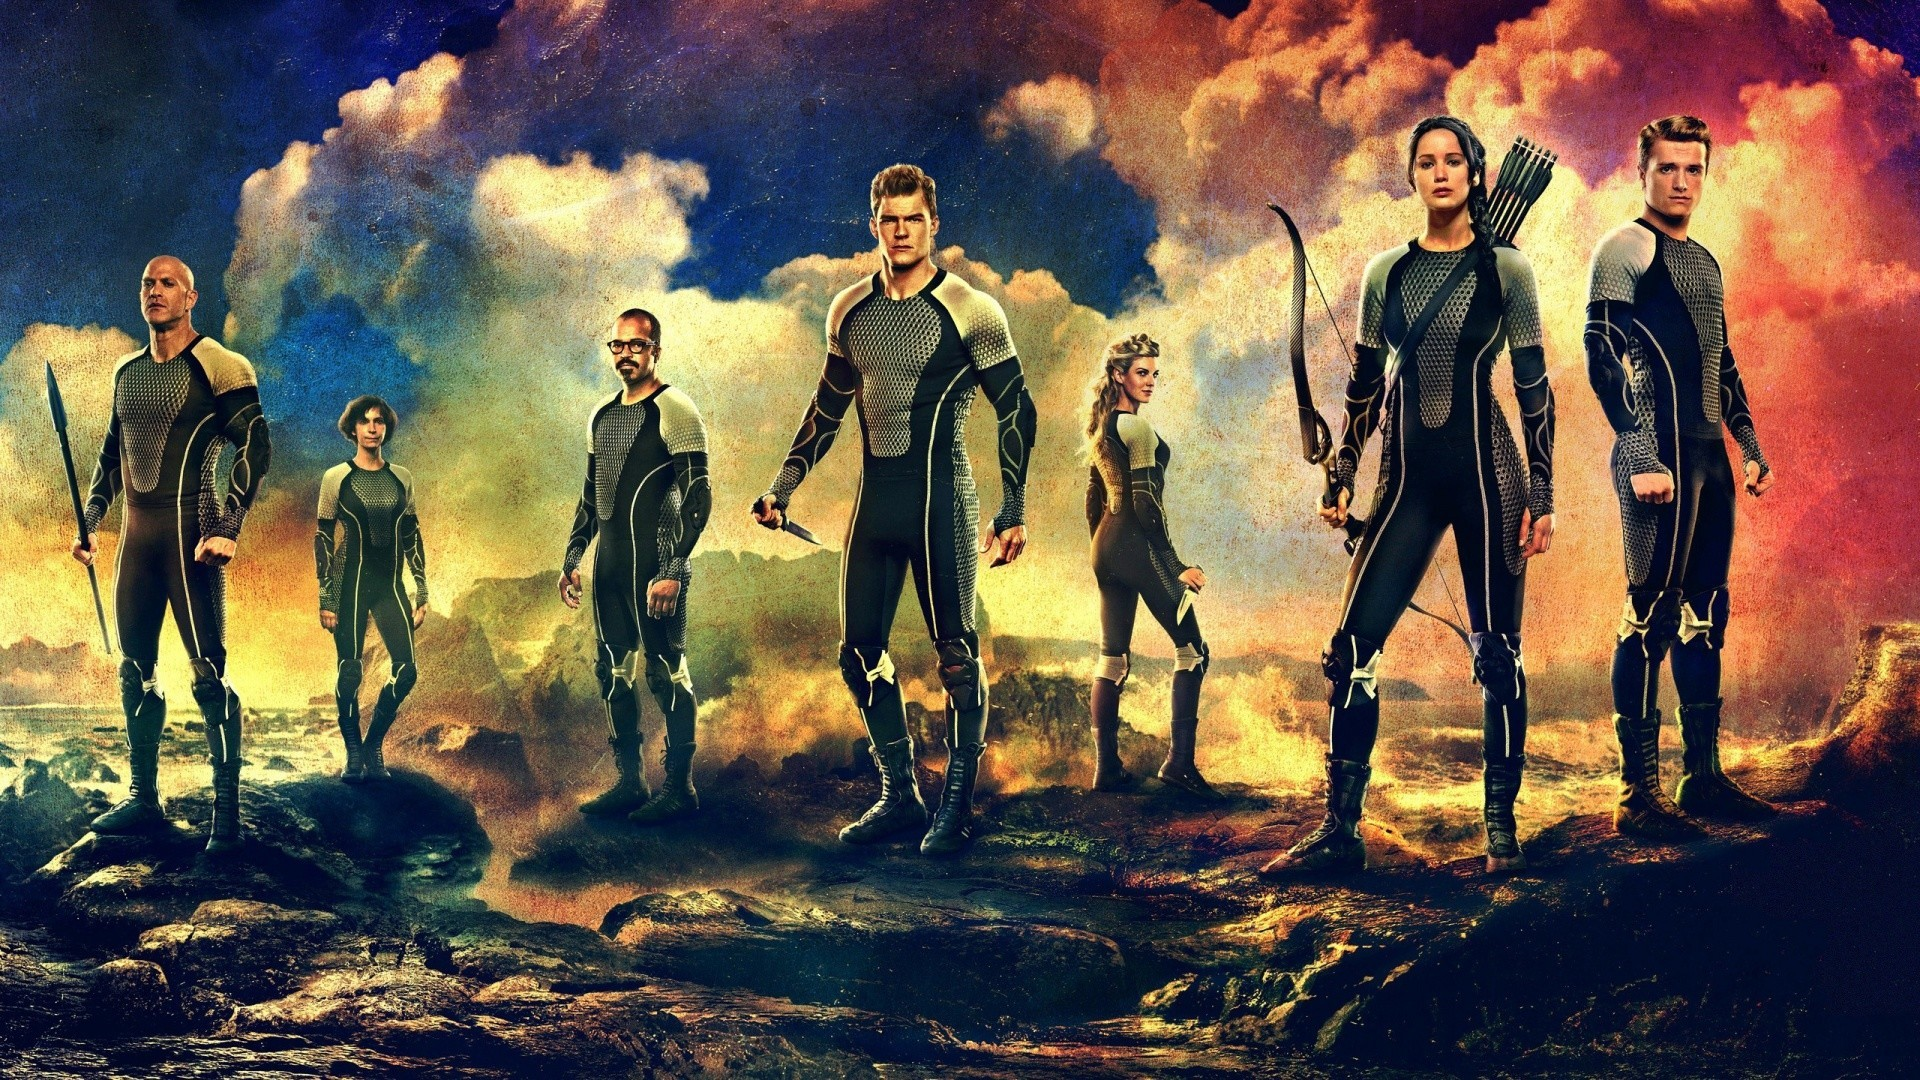 1920x1080  69 The Hunger Games: Catching Fire HD Wallpapers | Backgrounds -  Wallpaper Abyss